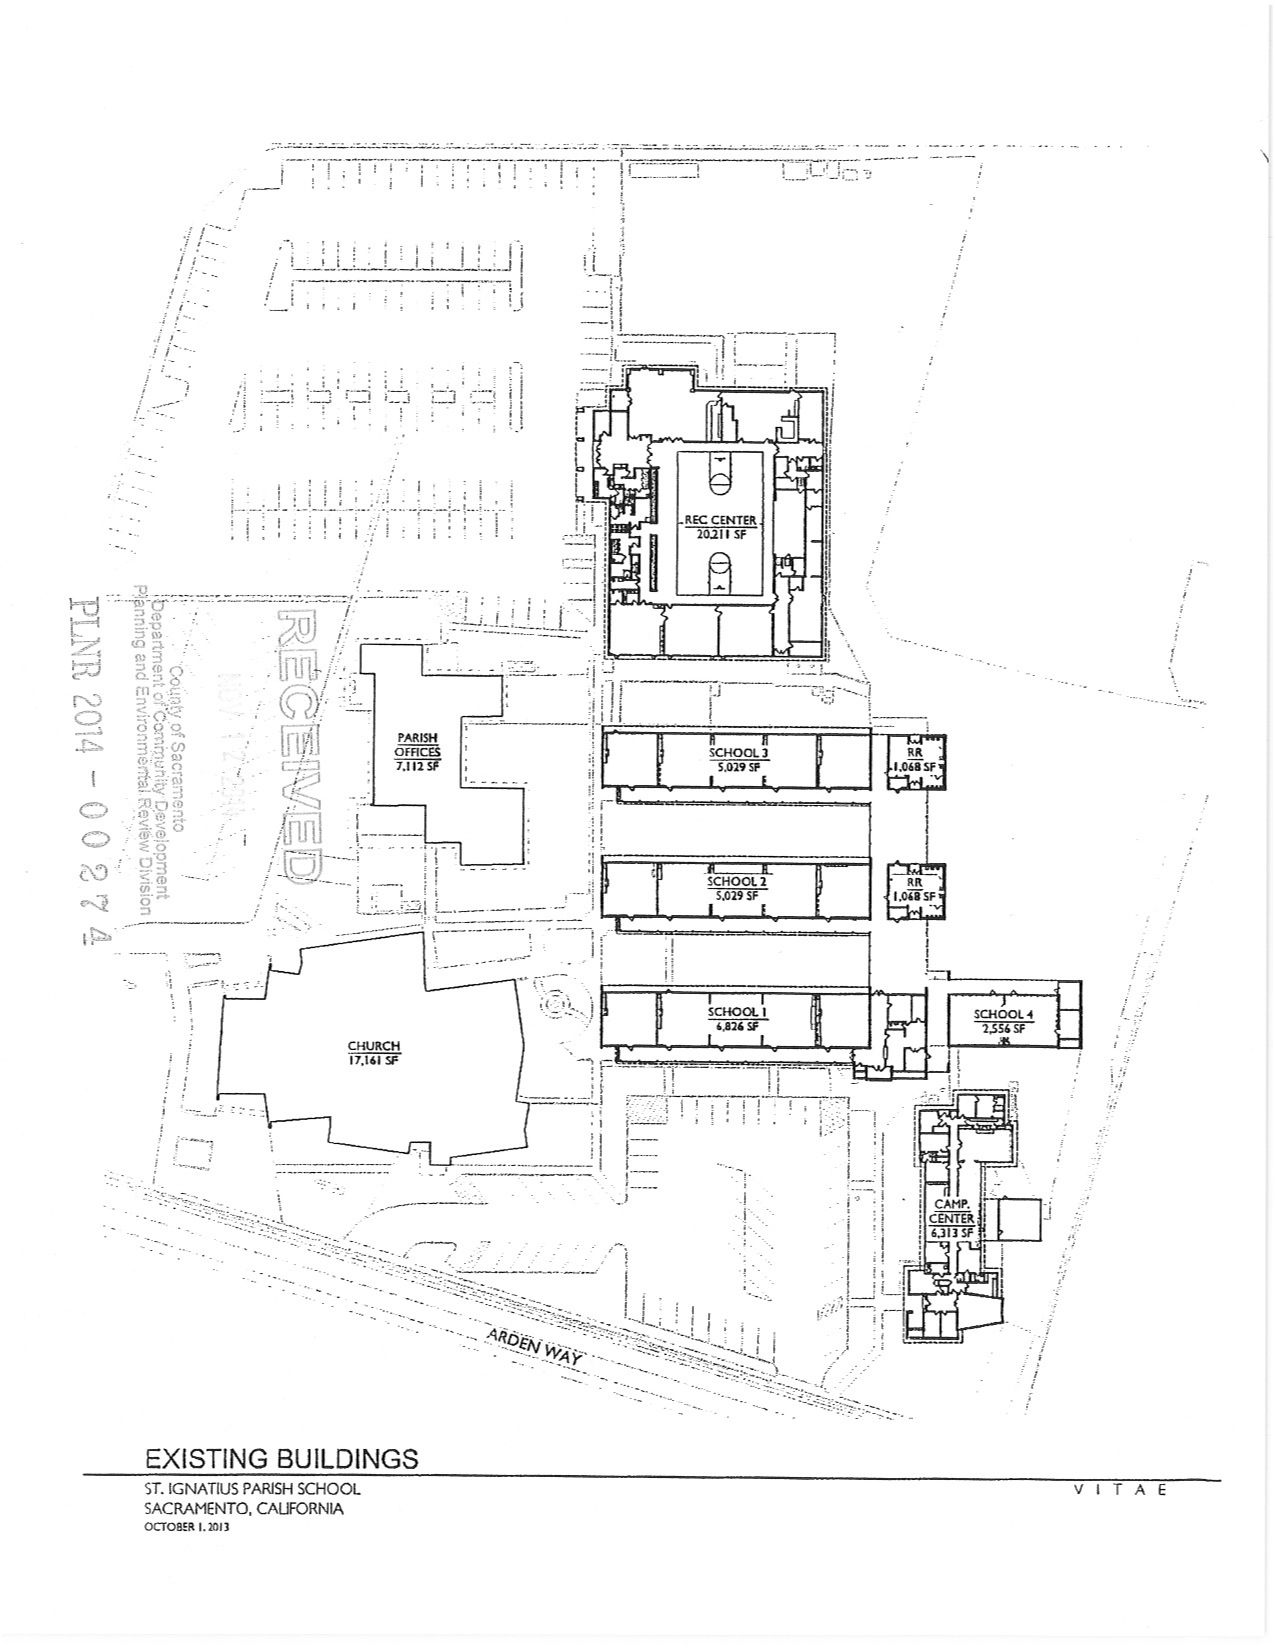 Conceptual Site Plan - Enlarged